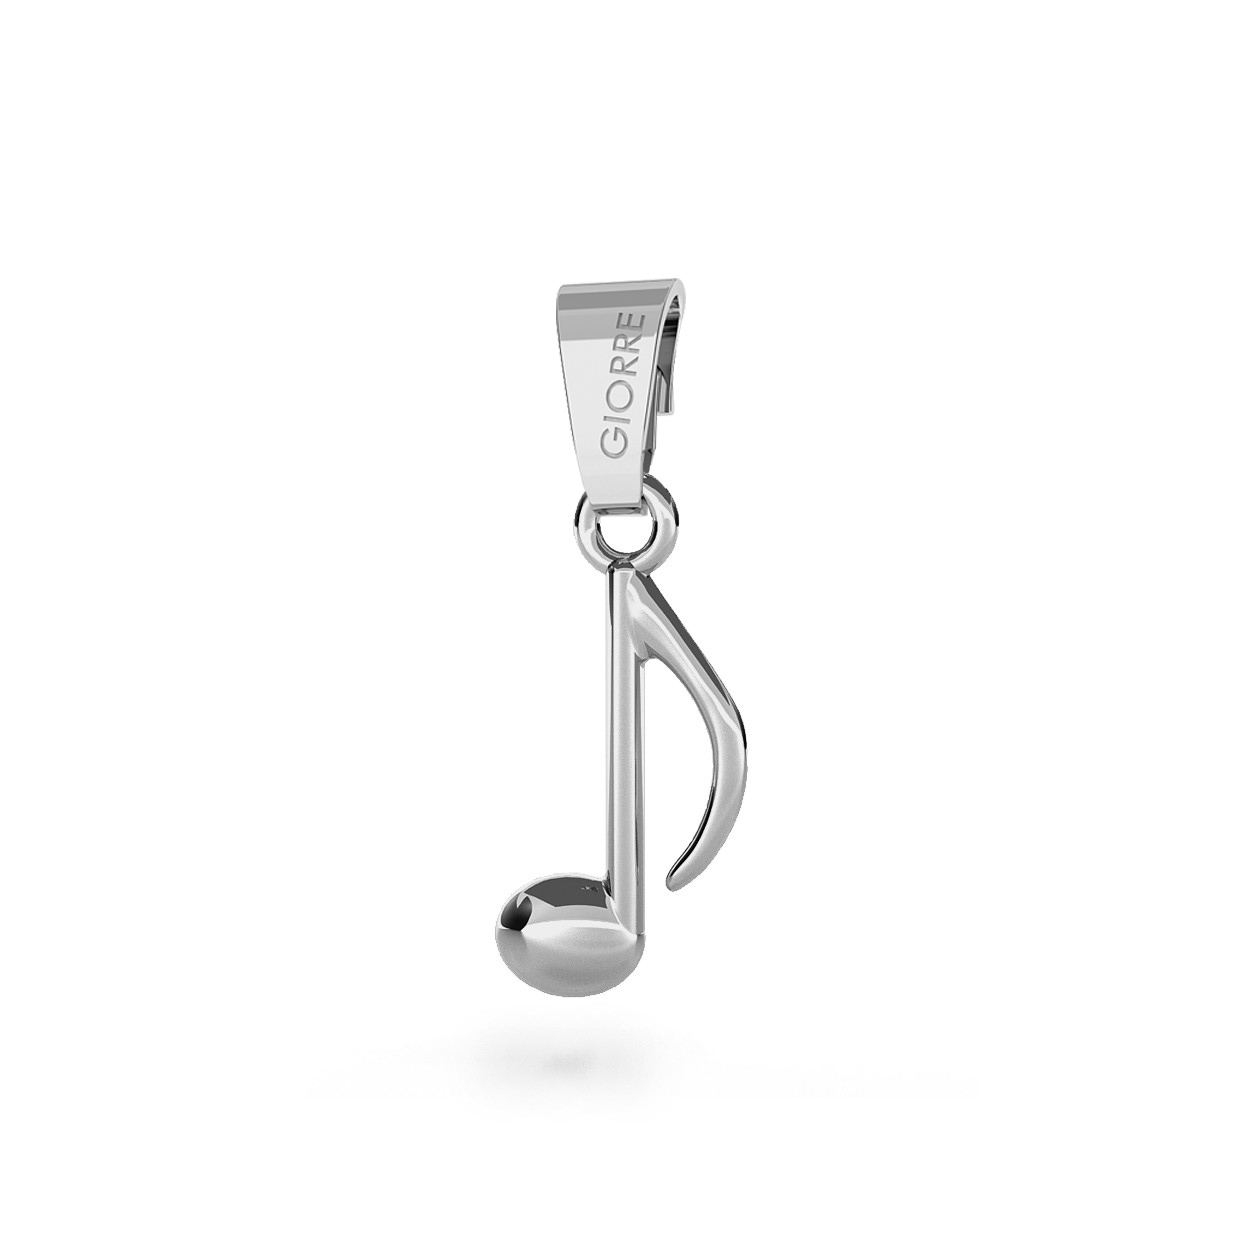 CHARM 23, NOTE, SILVER 925, RHODIUM OR GOLD PLATED